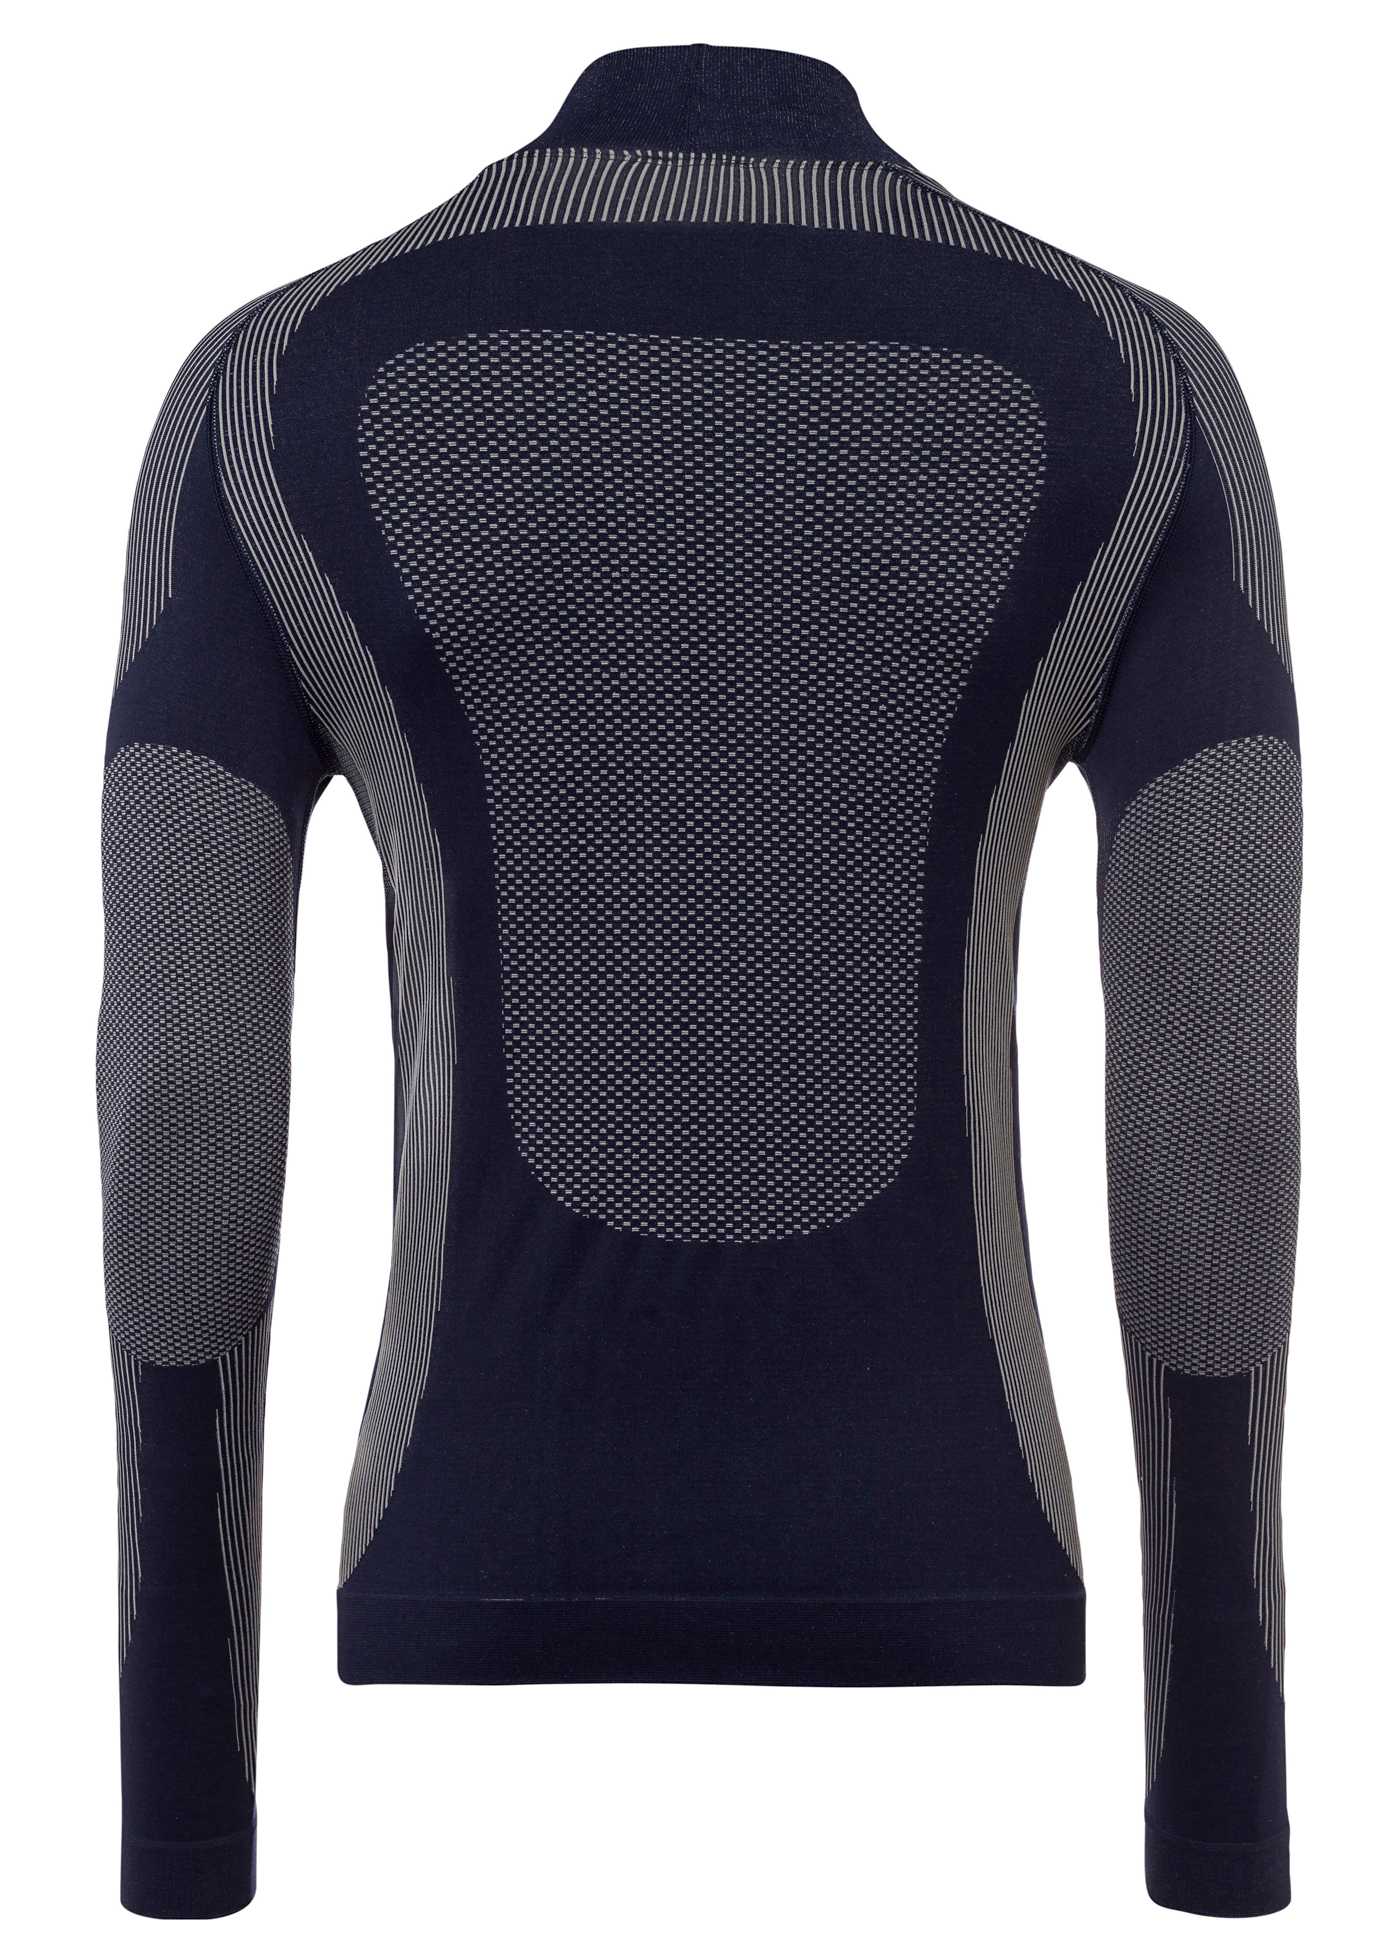 SPORT ACTIVE CLASSIC LONGSLEEVE image number 1